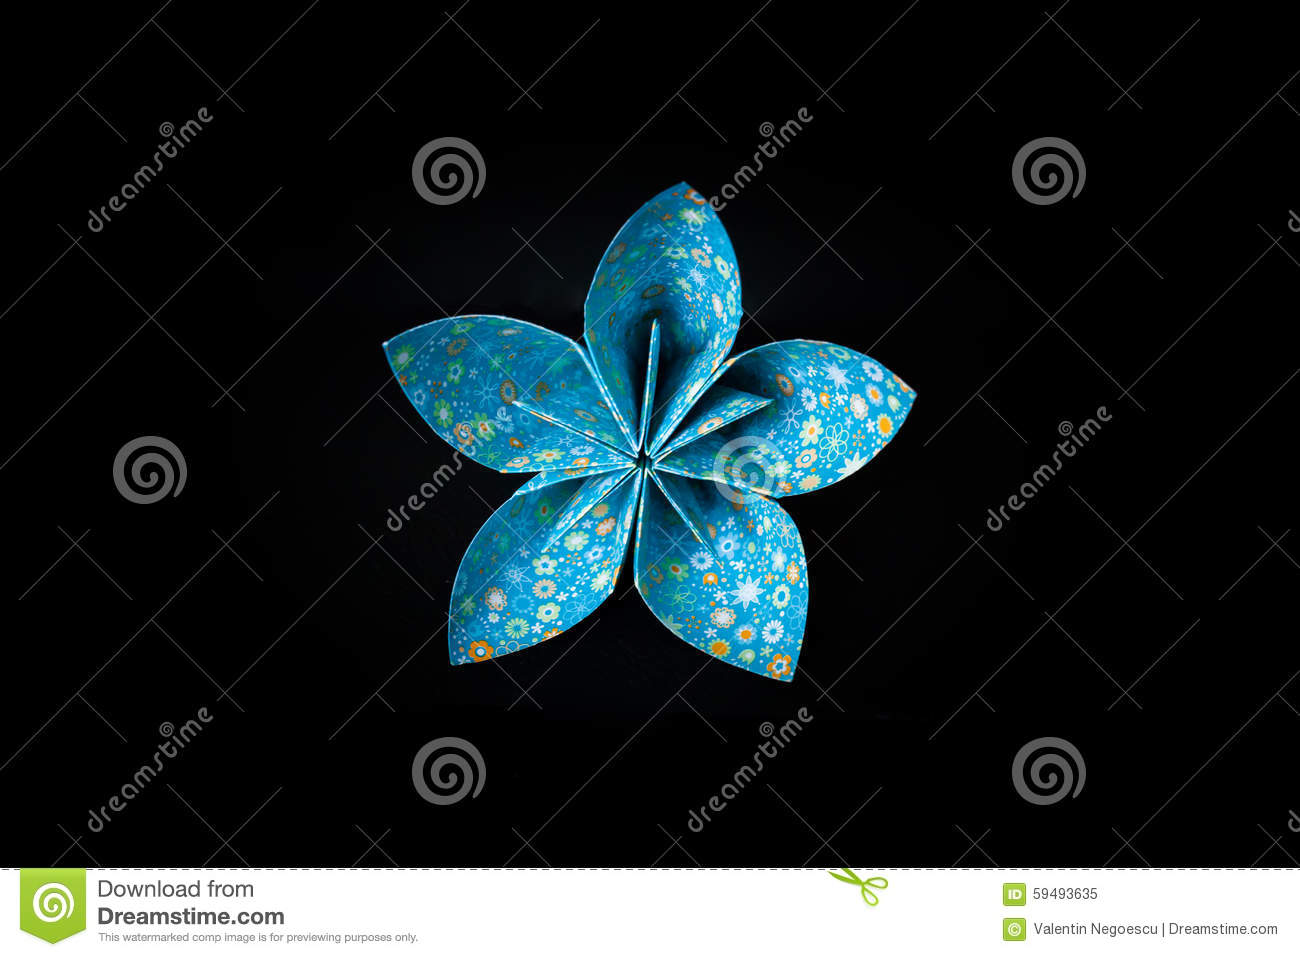 flower background with structure - photo #24